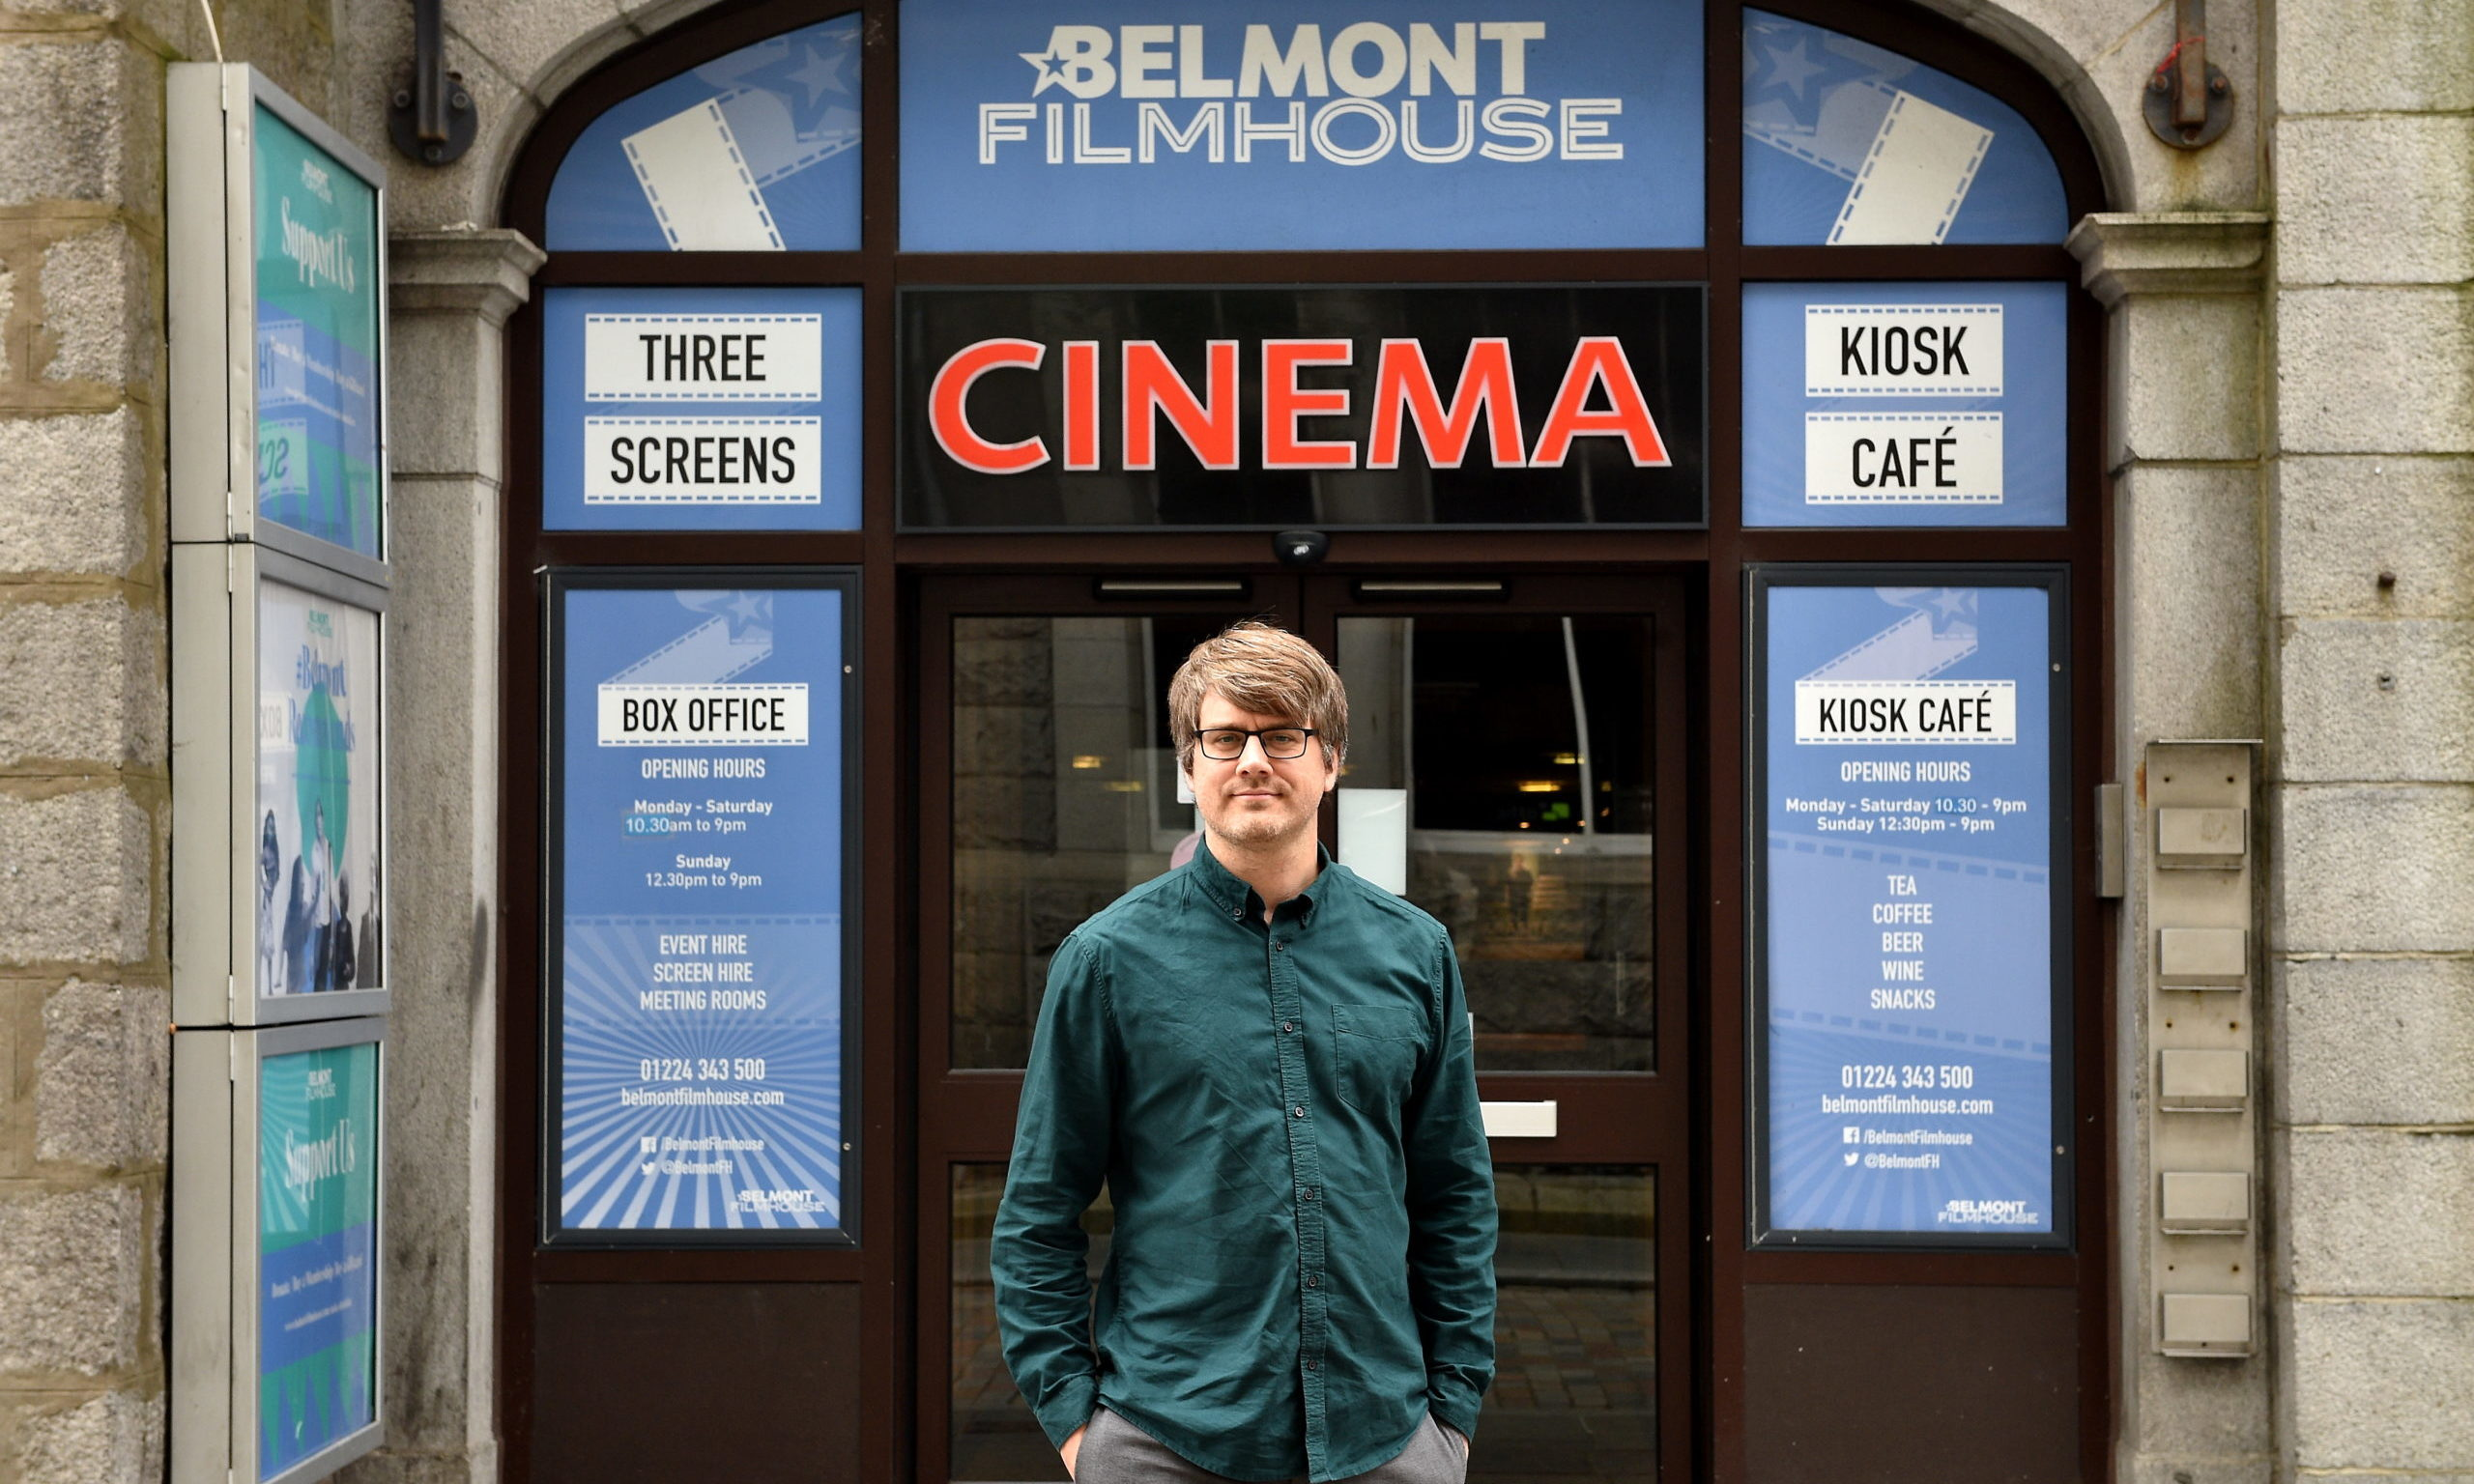 Pictured is Colin Farquhar, manager of Aberdeen's Belmont Filmhouse. He has launched a survey of local film fans on how they would feel about returning to the cinema as the Coronavirus lockdown is eased.  Picture by Darrell Bens.